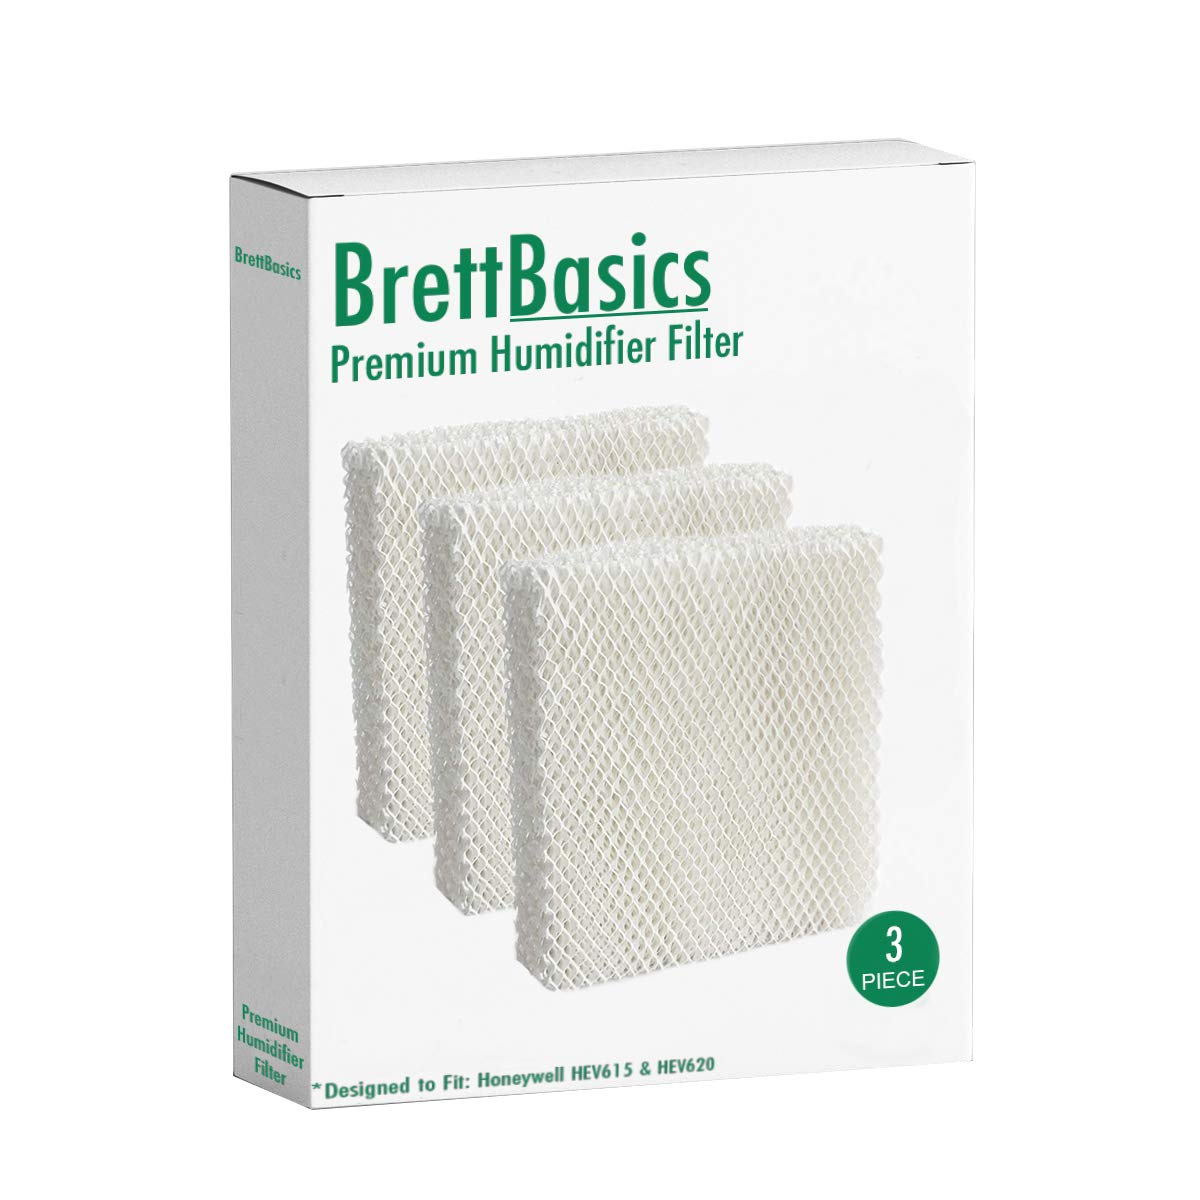 BrettBasics - Humidifier Wicking Filter T Compatible with Honeywell HFT600T, HFT600PDQ, Made for HEV615 and HEV620 Models (3-Pack) by BrettBasics